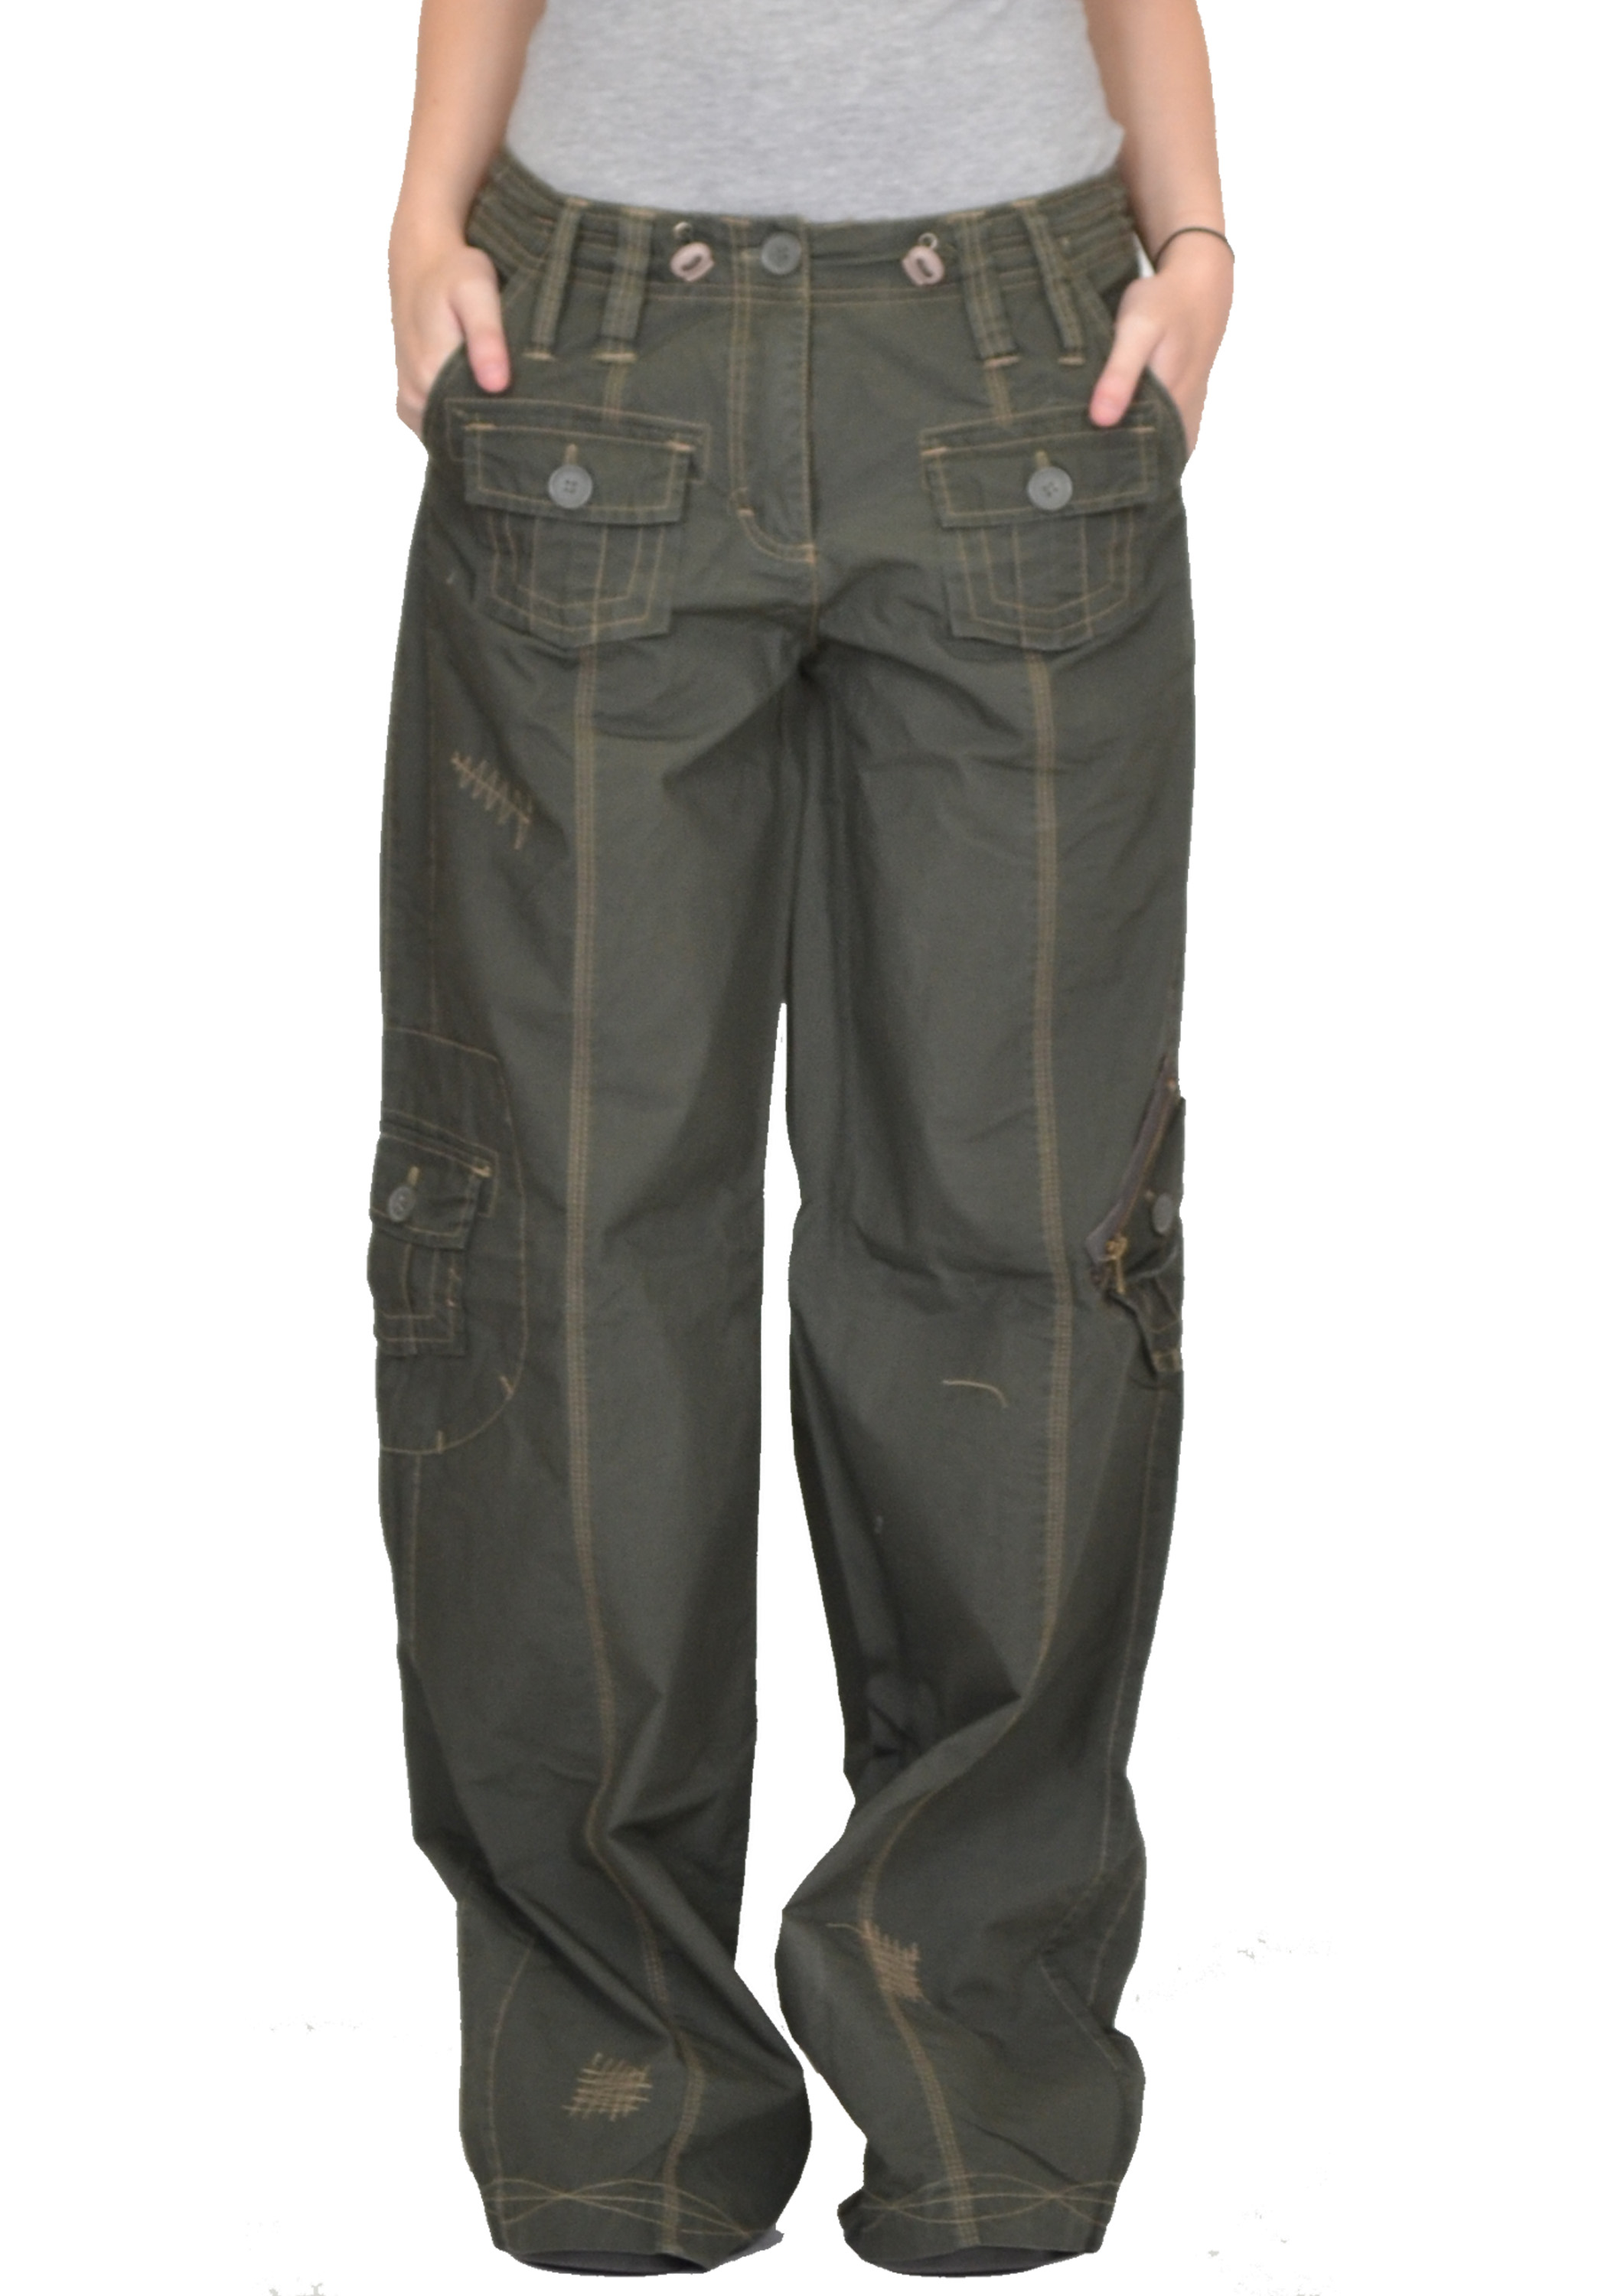 womens cargo pants big w photo - 1